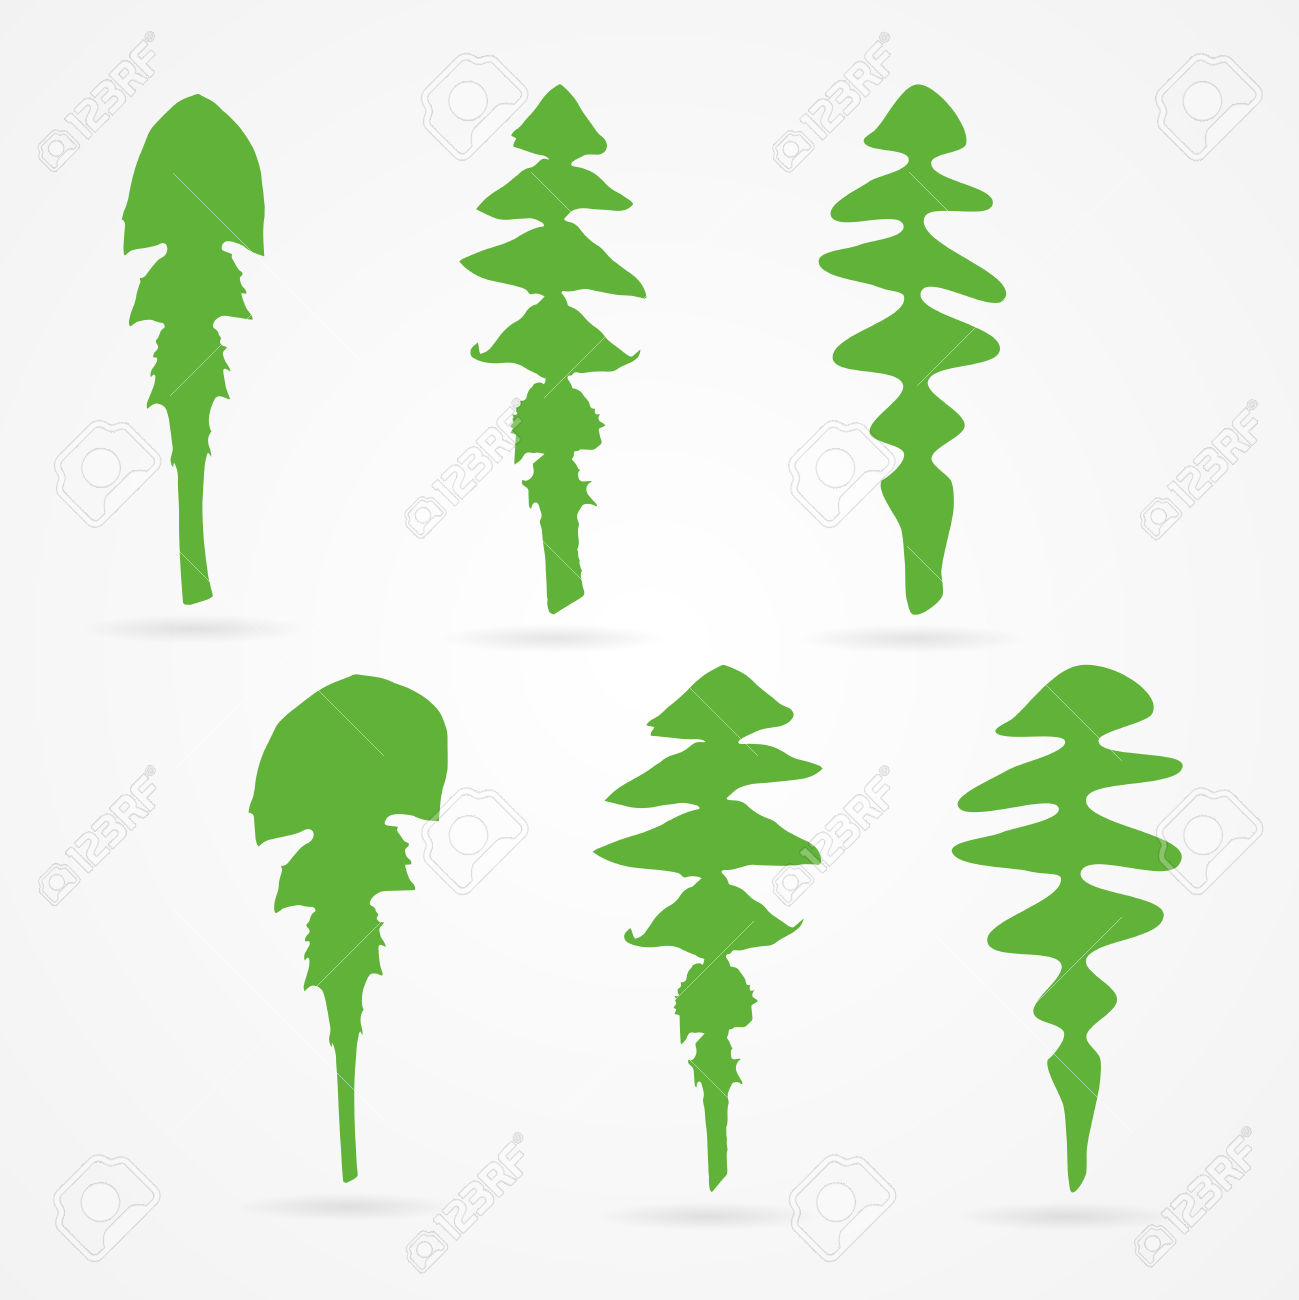 Set Of Clean Vector Dandelion Leaf Silhouettes Royalty Free.